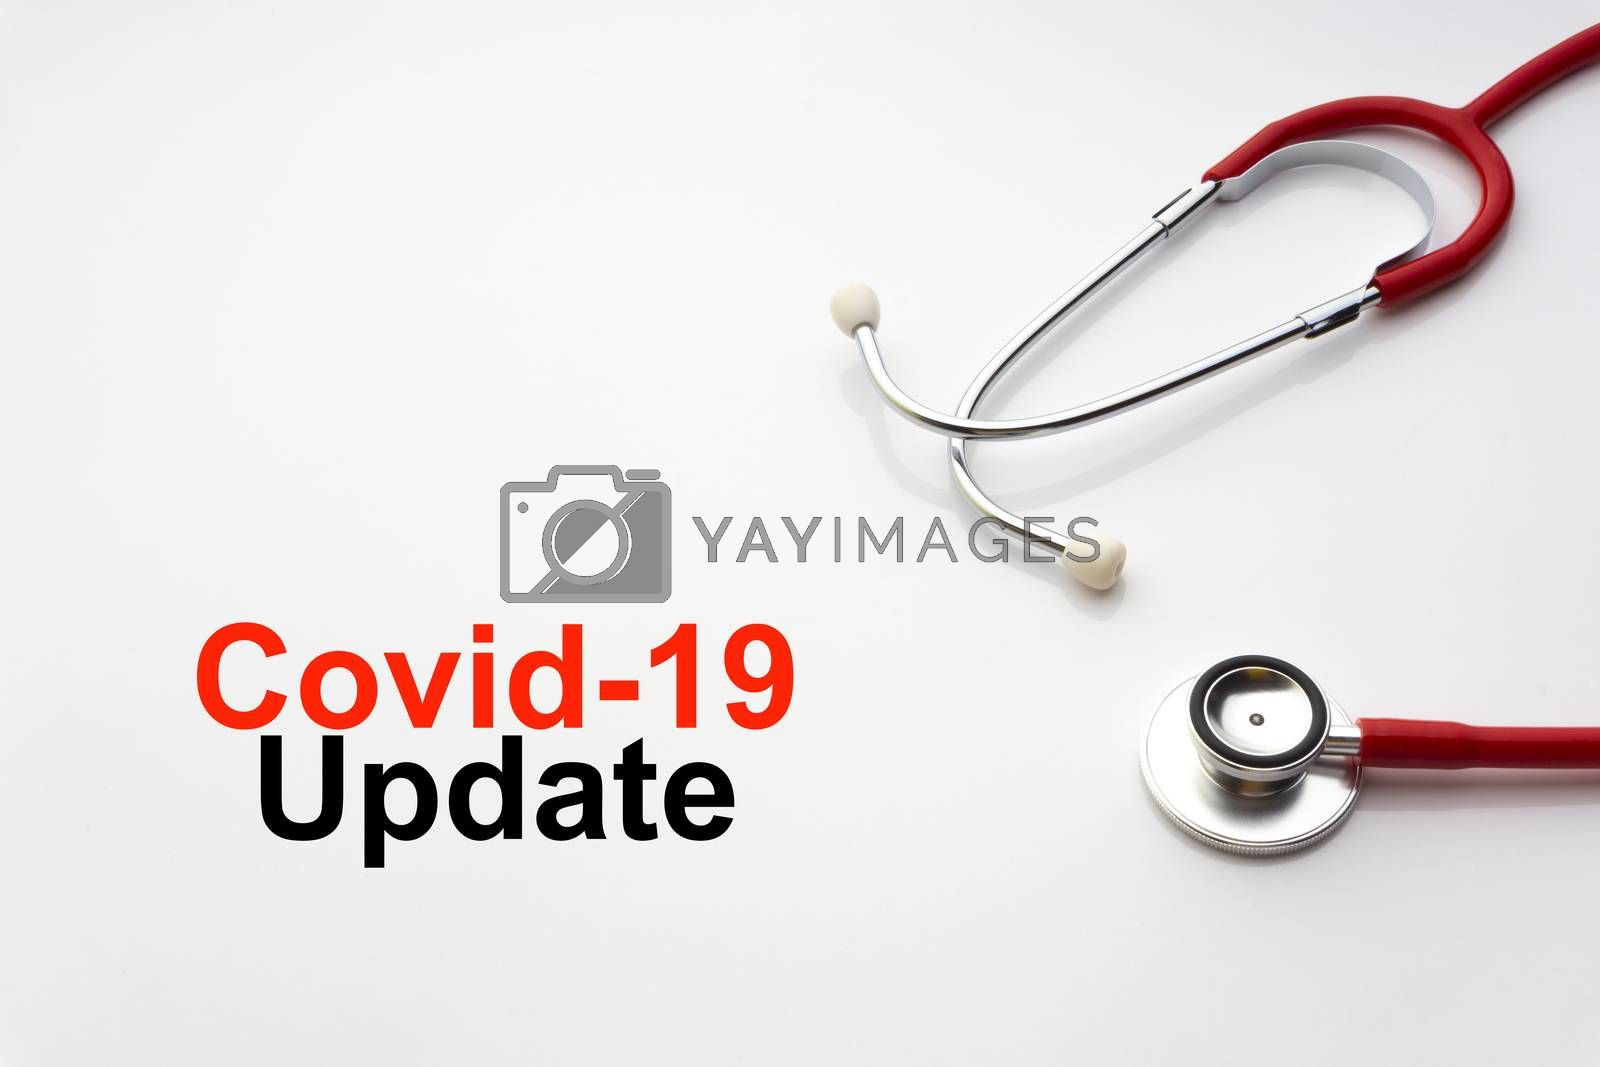 COVID-19 UPDATE text with stethoscope on white background. Covid or Coronavirus Concept